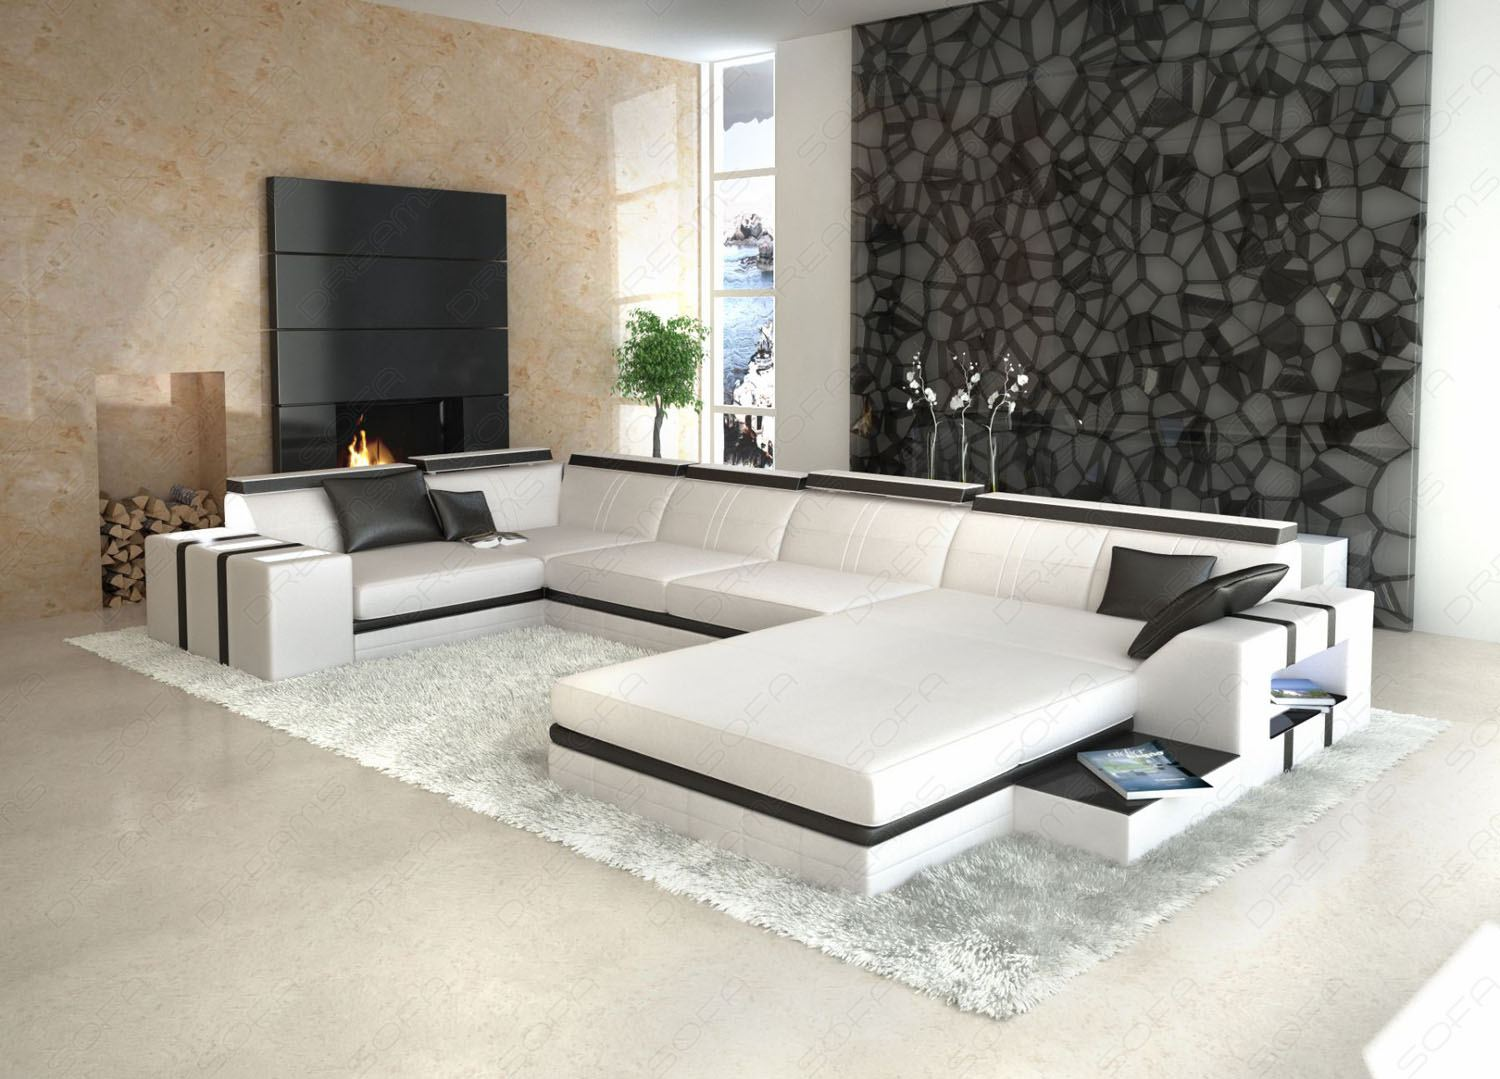 designer wohnlandschaft asti u form weiss schwarz ledersofa ebay. Black Bedroom Furniture Sets. Home Design Ideas